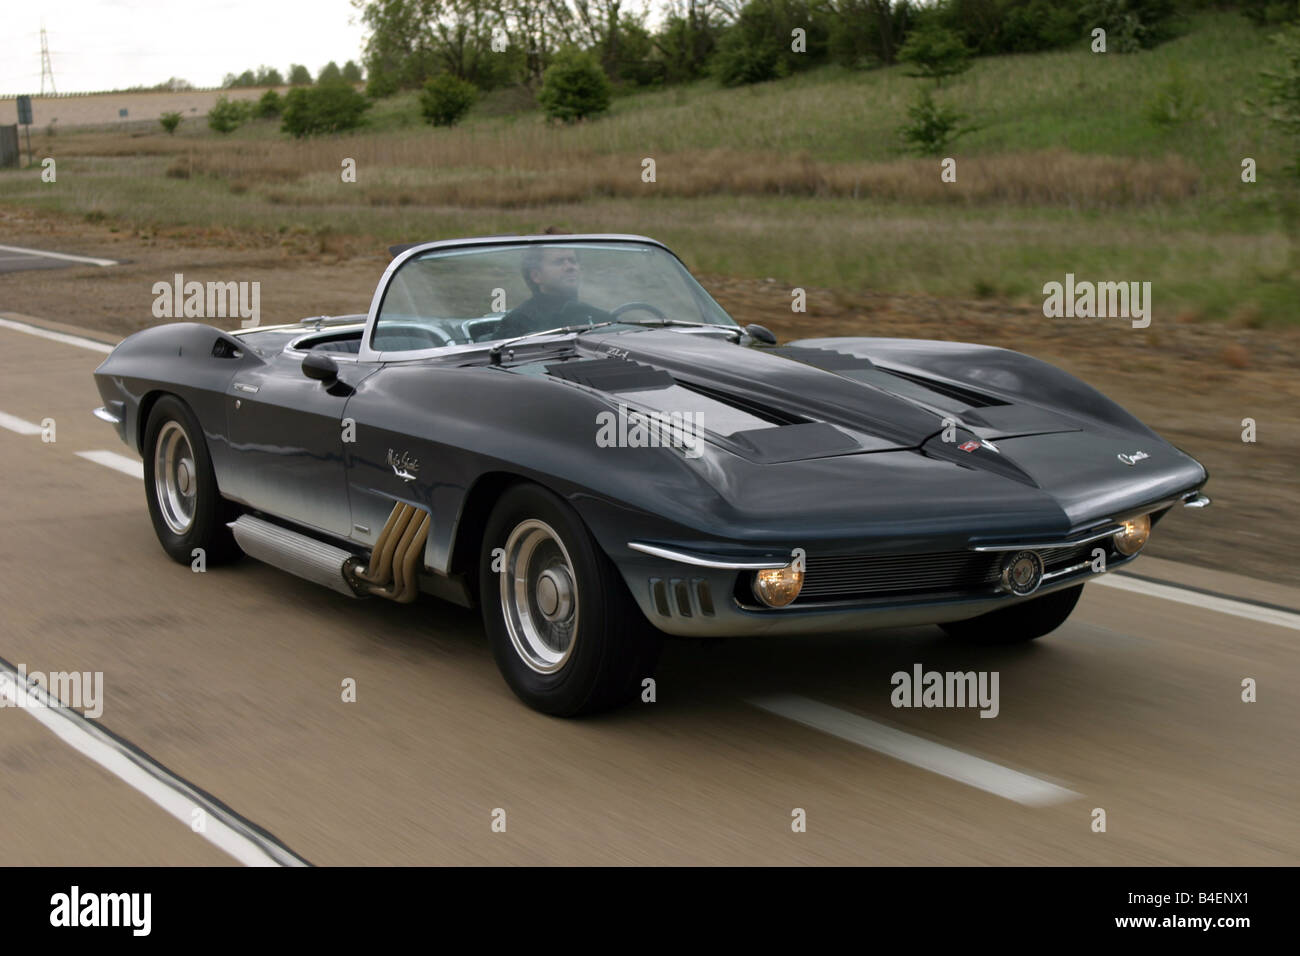 car chevrolet corvette mako shark model year 1961. Black Bedroom Furniture Sets. Home Design Ideas